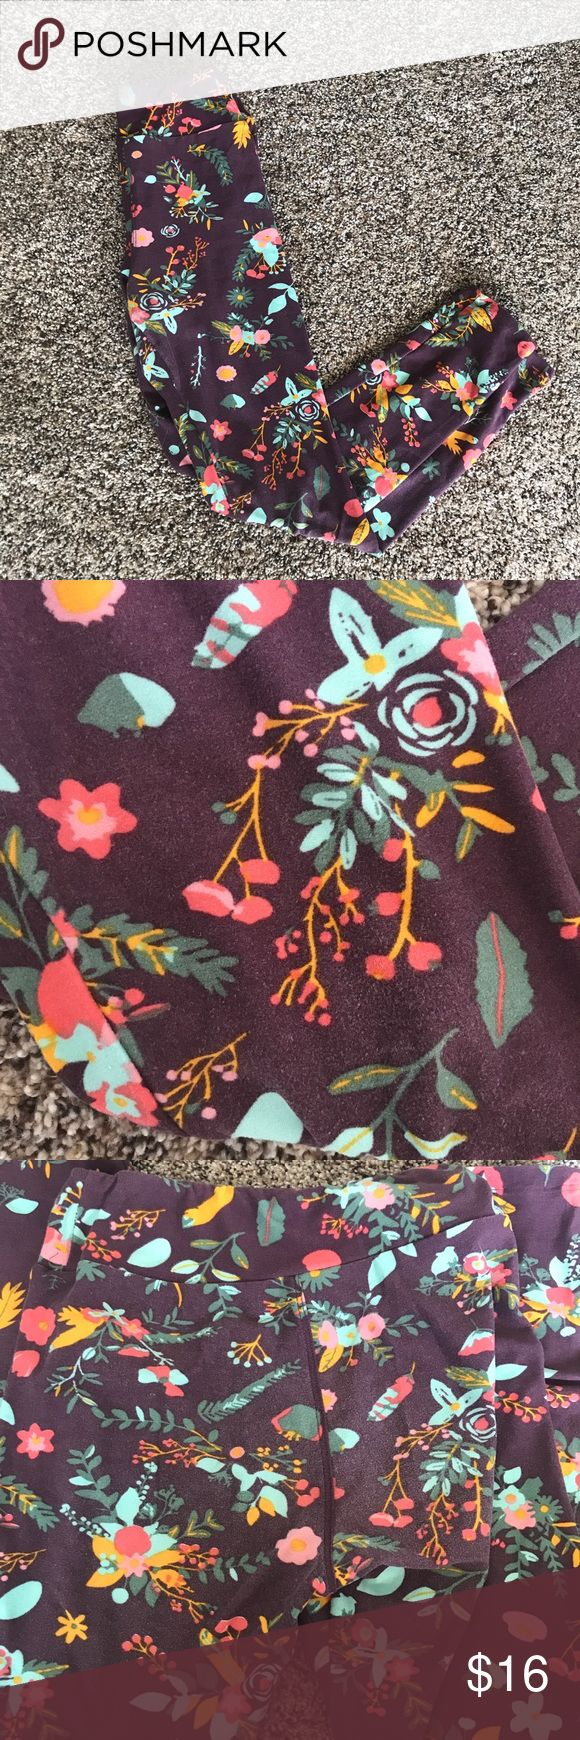 Floral Lularoe Tween Leggings Super soft leggings by the breakout brand Lularoe. They are Tween sized, and will fit a women's 00-2 (or more petite 4). These were worn a handful of times, and have some light fading on the knees and butt areas (as pictured). They were always washed to Lularoe standards. LuLaRoe Pants Leggings